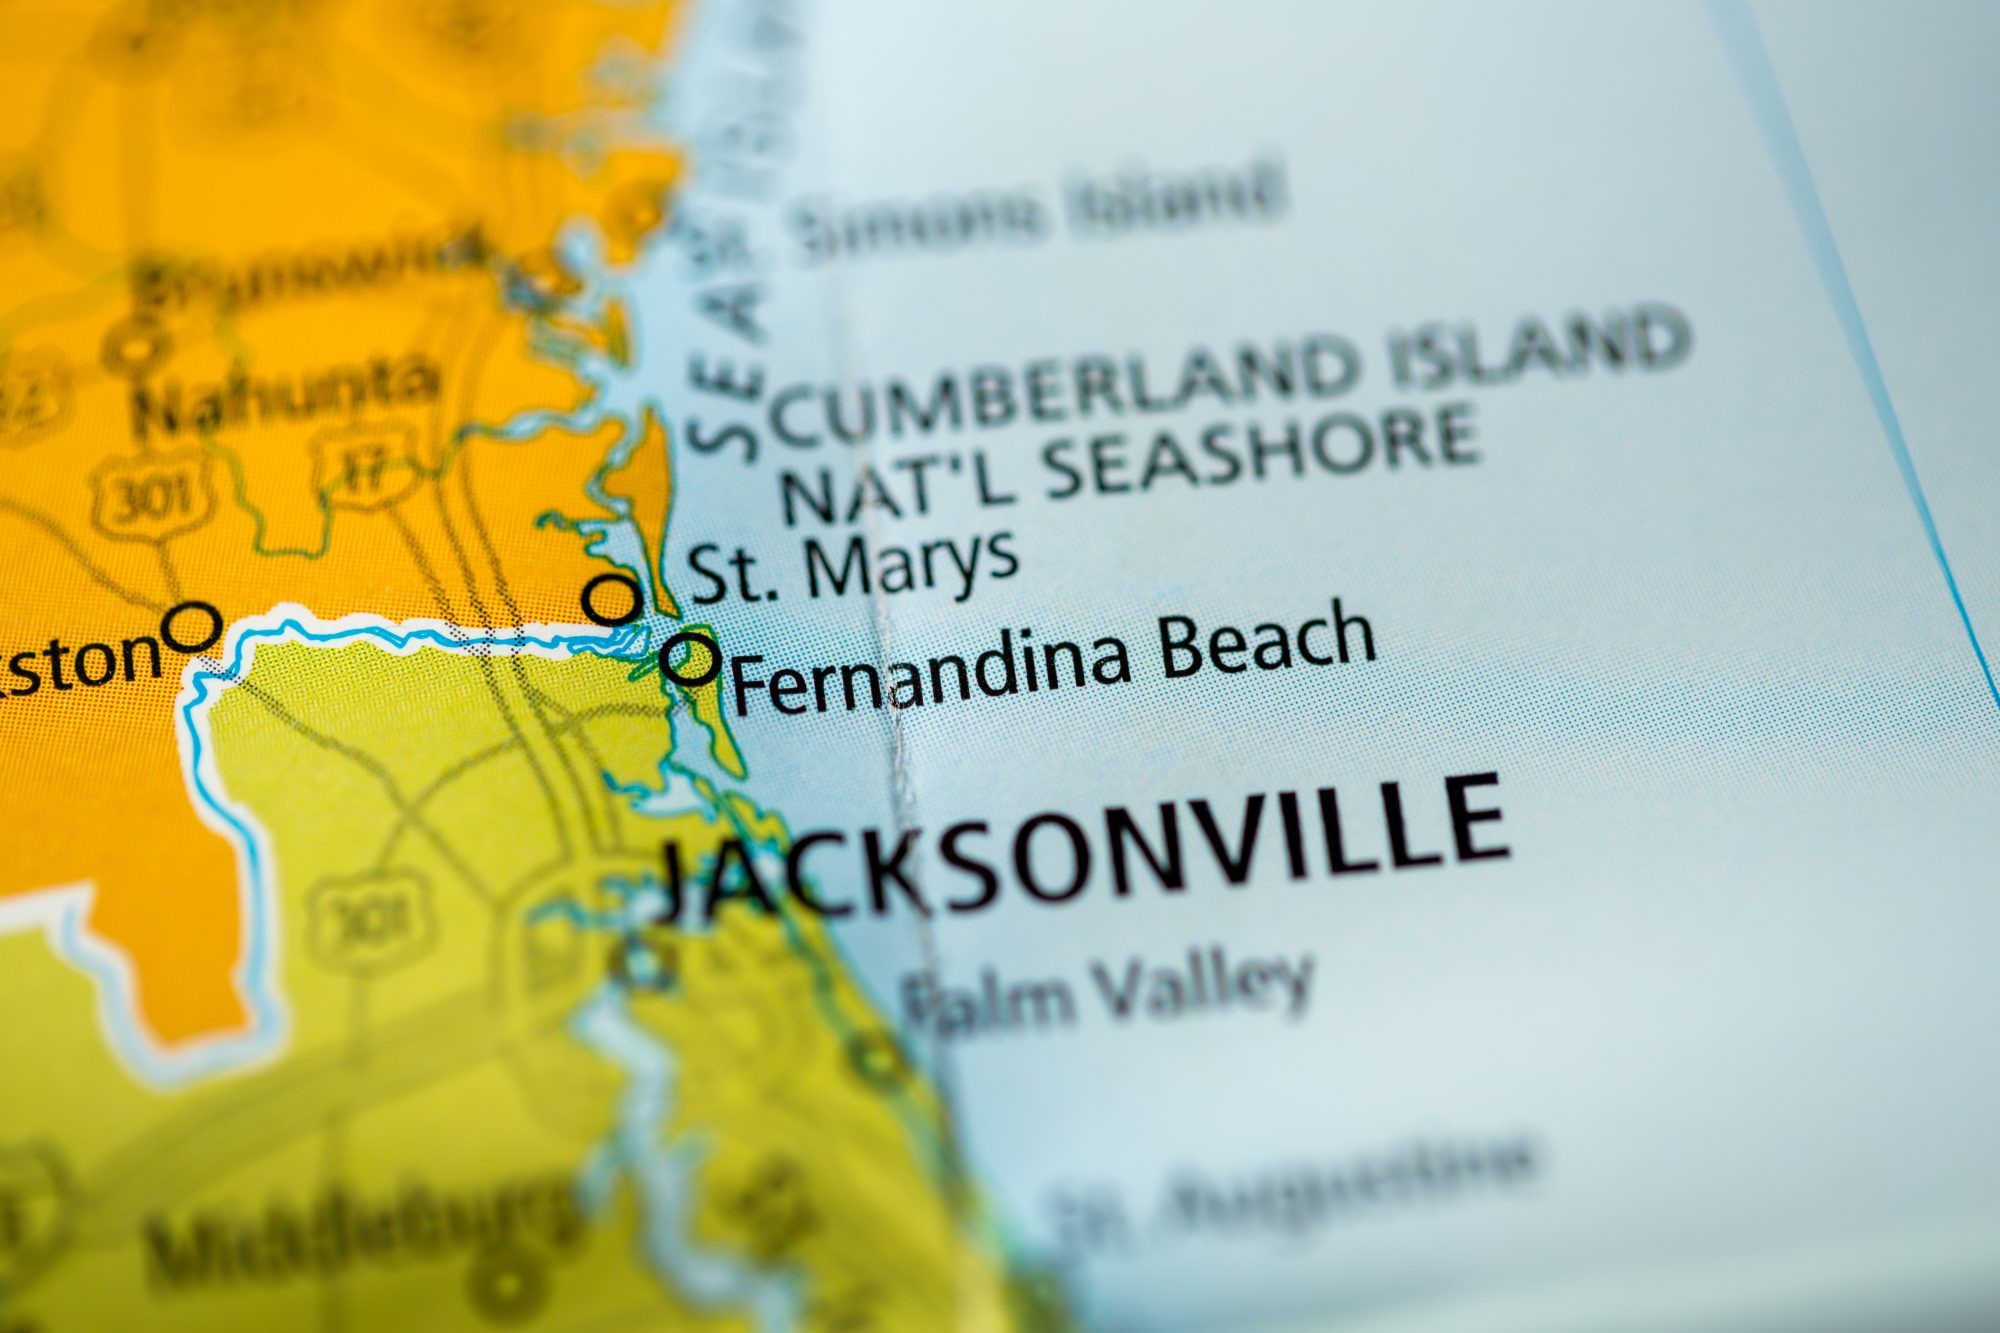 Fernandina Beach Maritime Lawyer